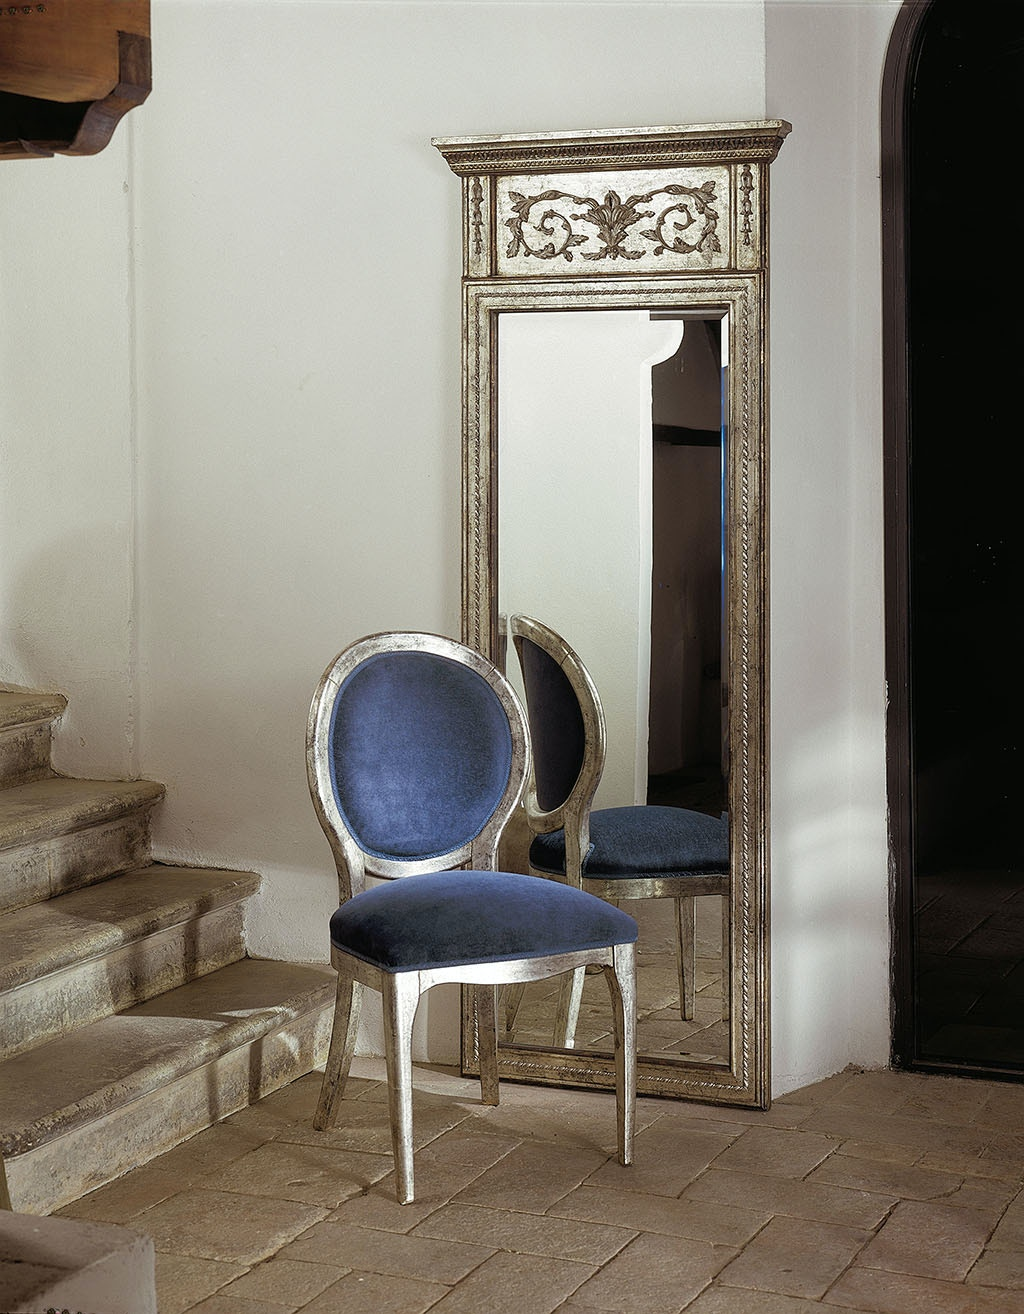 Amazing Von Hemert Interiors Italian Imports Living Room Mfr: XI64 Mirror #9402B At Von  Hemert Interiors